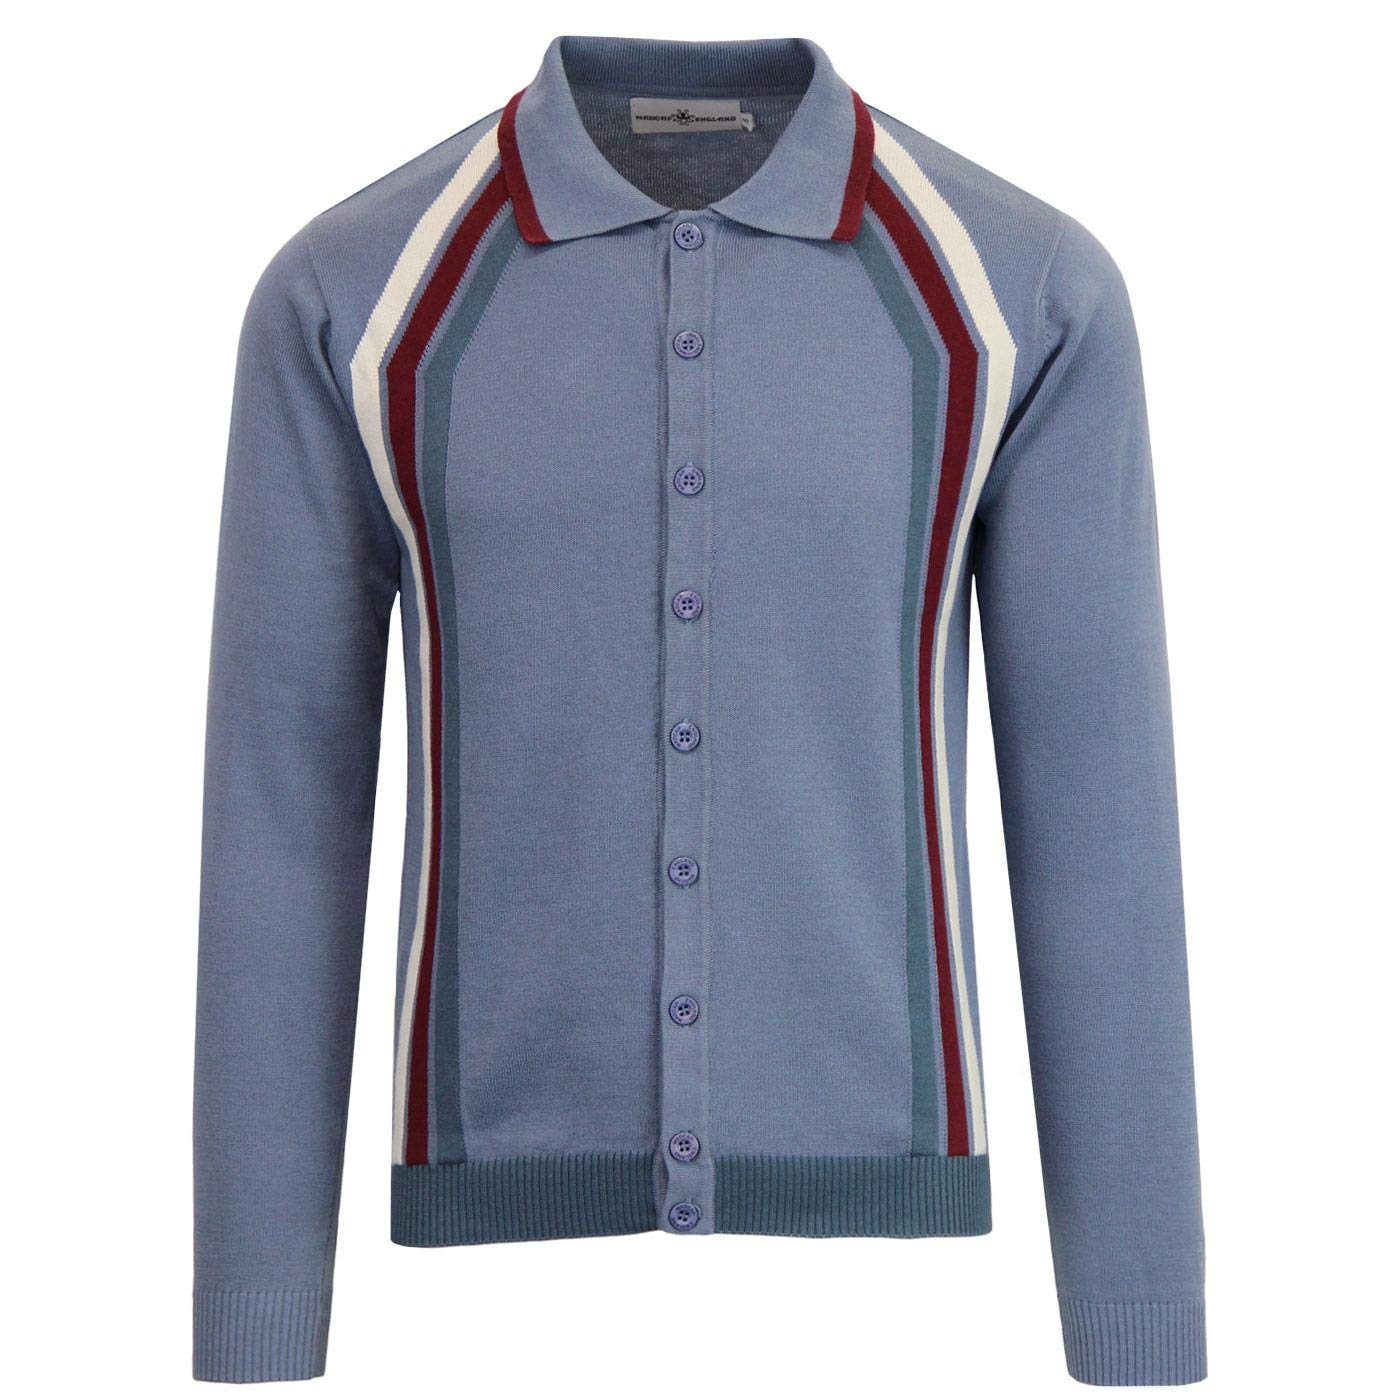 Mens Vintage Shirts – Casual, Dress, T-shirts, Polos Madcap England Blast Mens Retro 50s 60s 70s Mod Knitted Polo Cardigan £39.99 AT vintagedancer.com